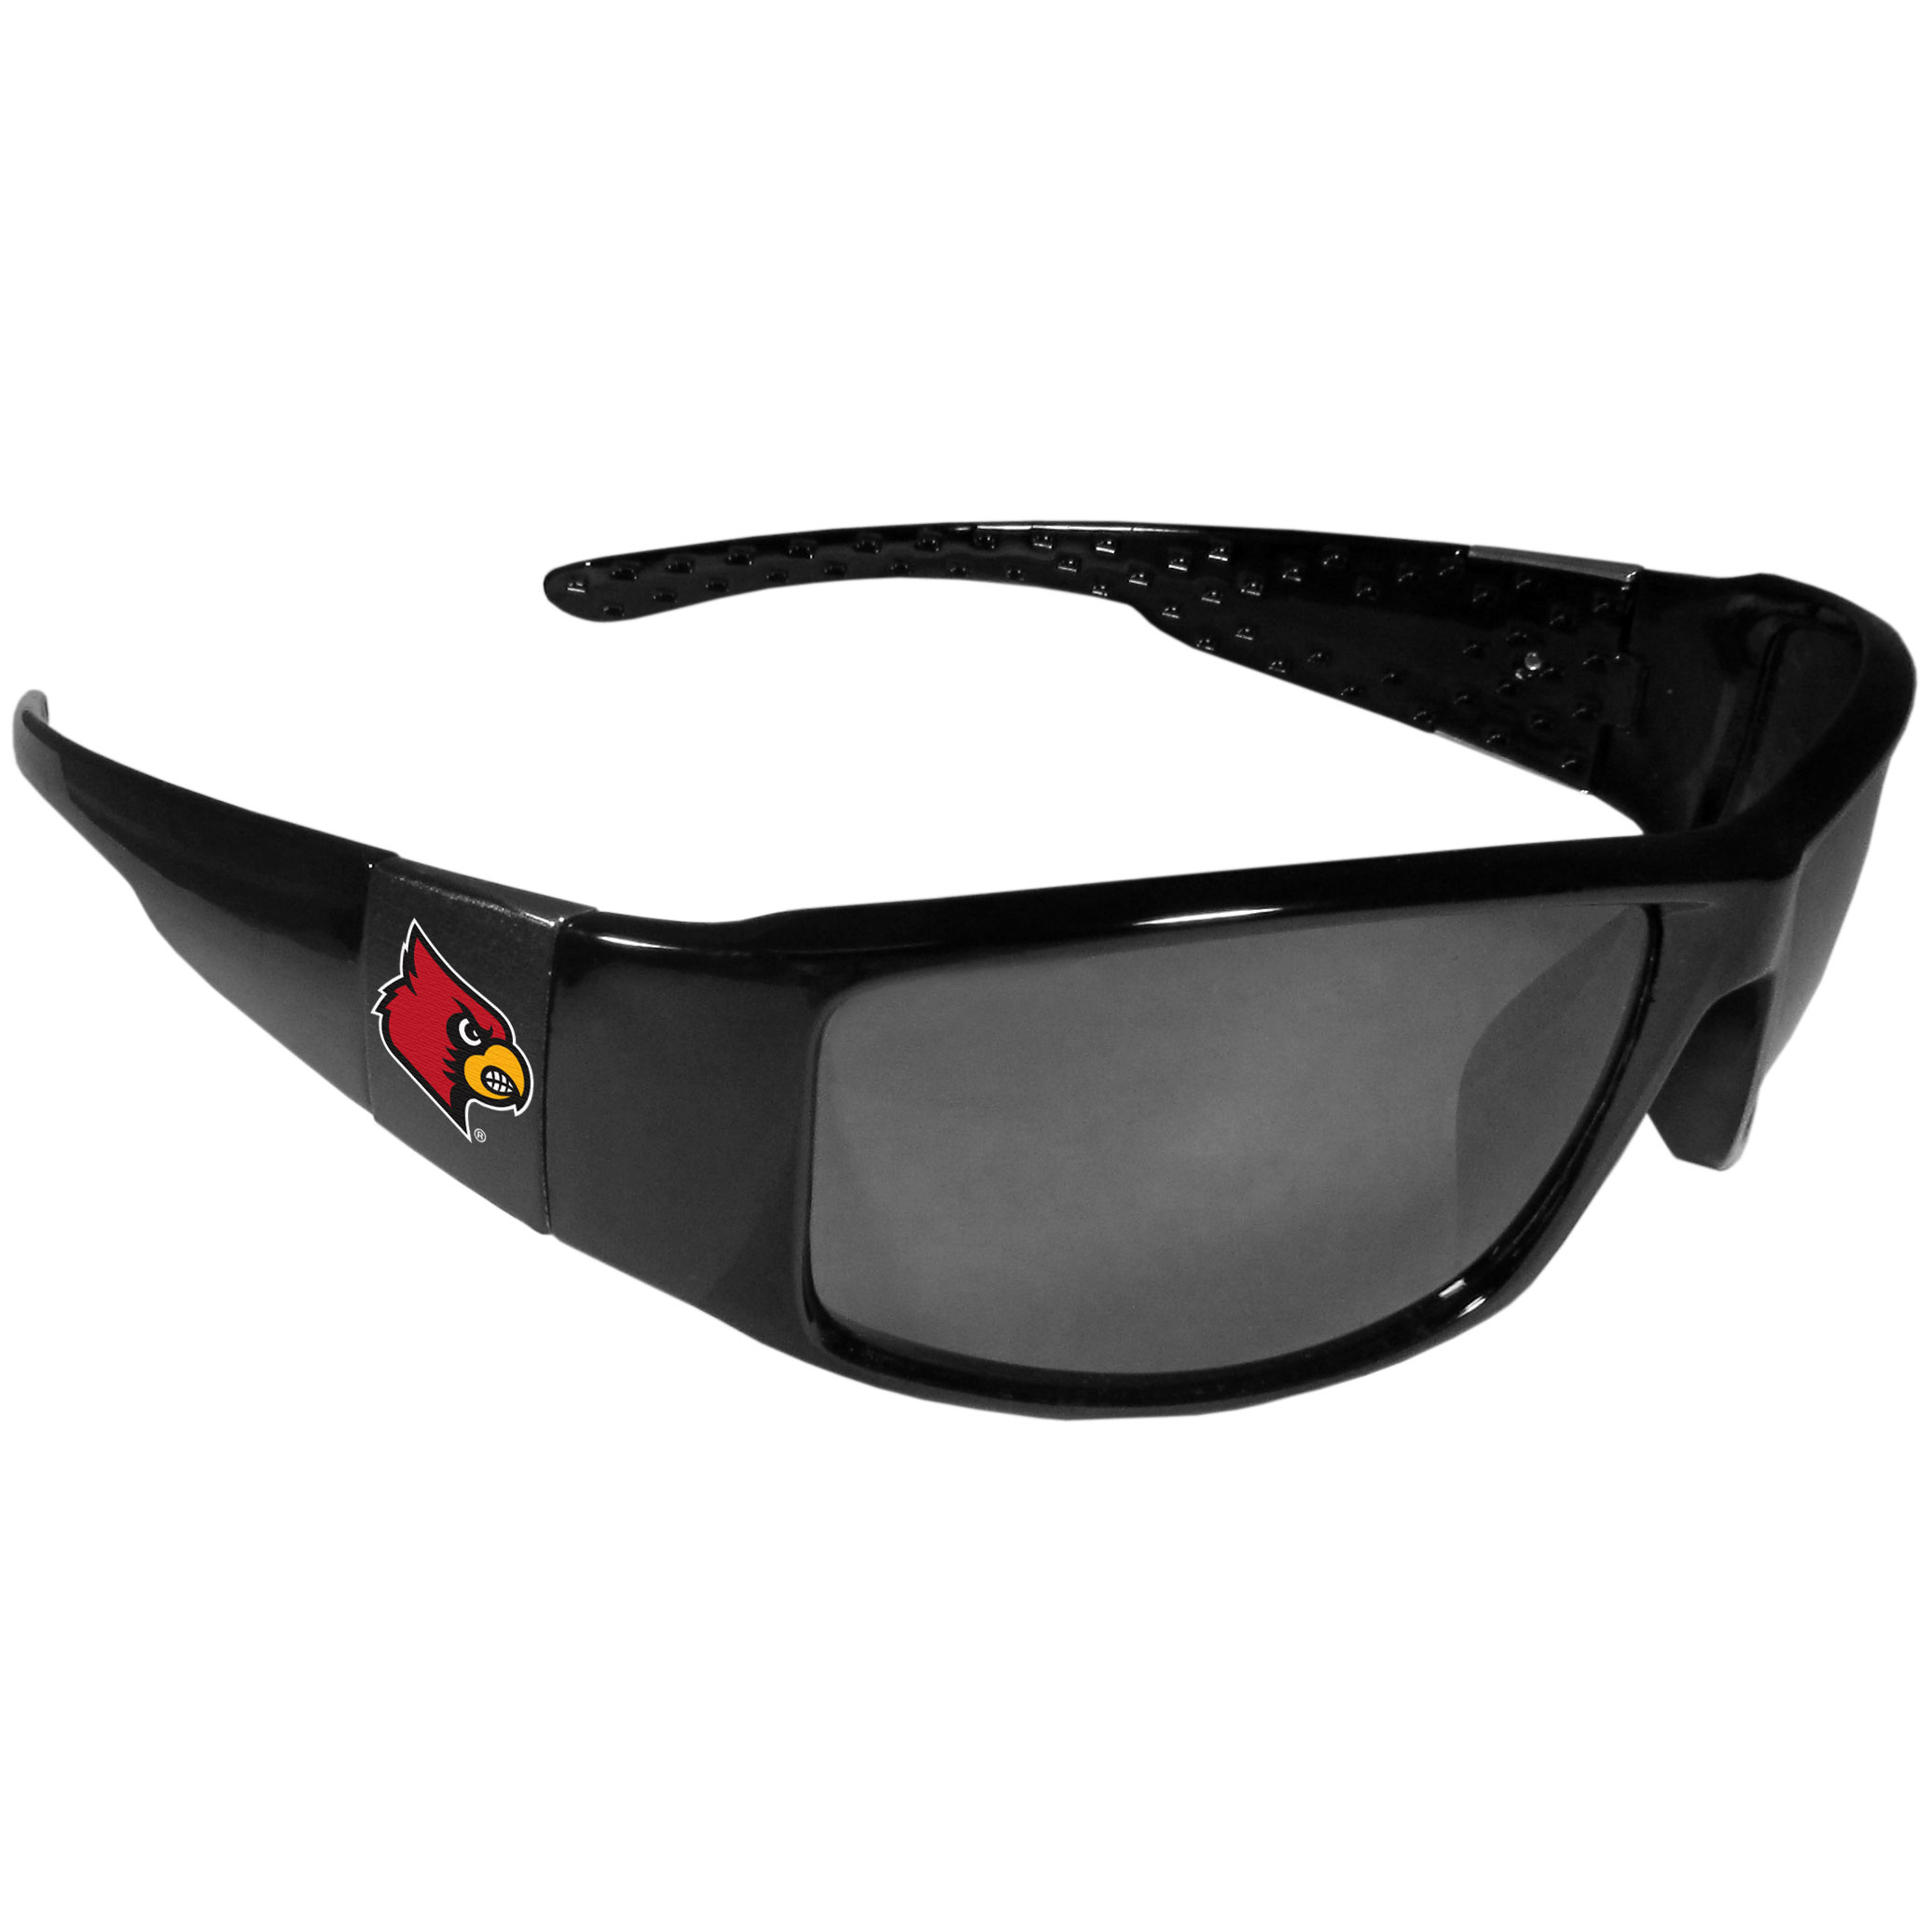 Louisville Cardinals Black Wrap Sunglasses - These designer inspired frames have a sleek look in all black with  Louisville Cardinals shields on each arm with a printed logo. The shades are perfect for any outdoor activity like; golfing, driving, hiking, fishing or cheering on the team at a tailgating event or at a home game day BBQ with a lens rating of 100% UVA/UVB for maximum UV protection. The high-quality frames are as durable as they are fashionable and with their classic look they are the perfect fan accessory that can be worn everyday for every occasion.